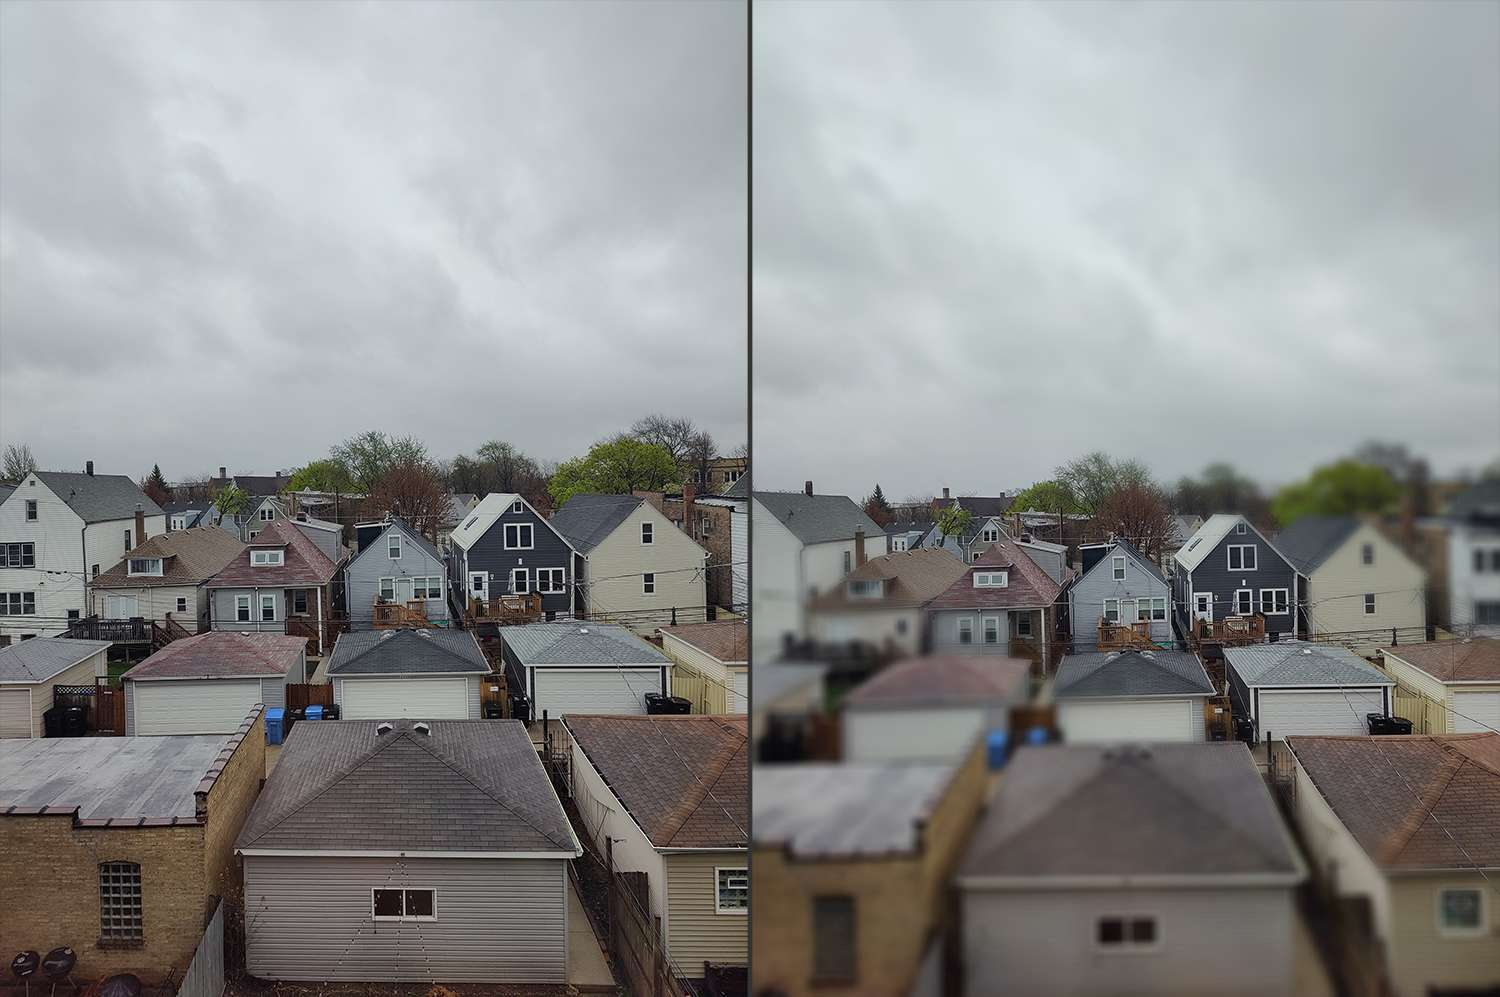 Before and after shot of a city neighborhood using OnePlus tilt-shift mode